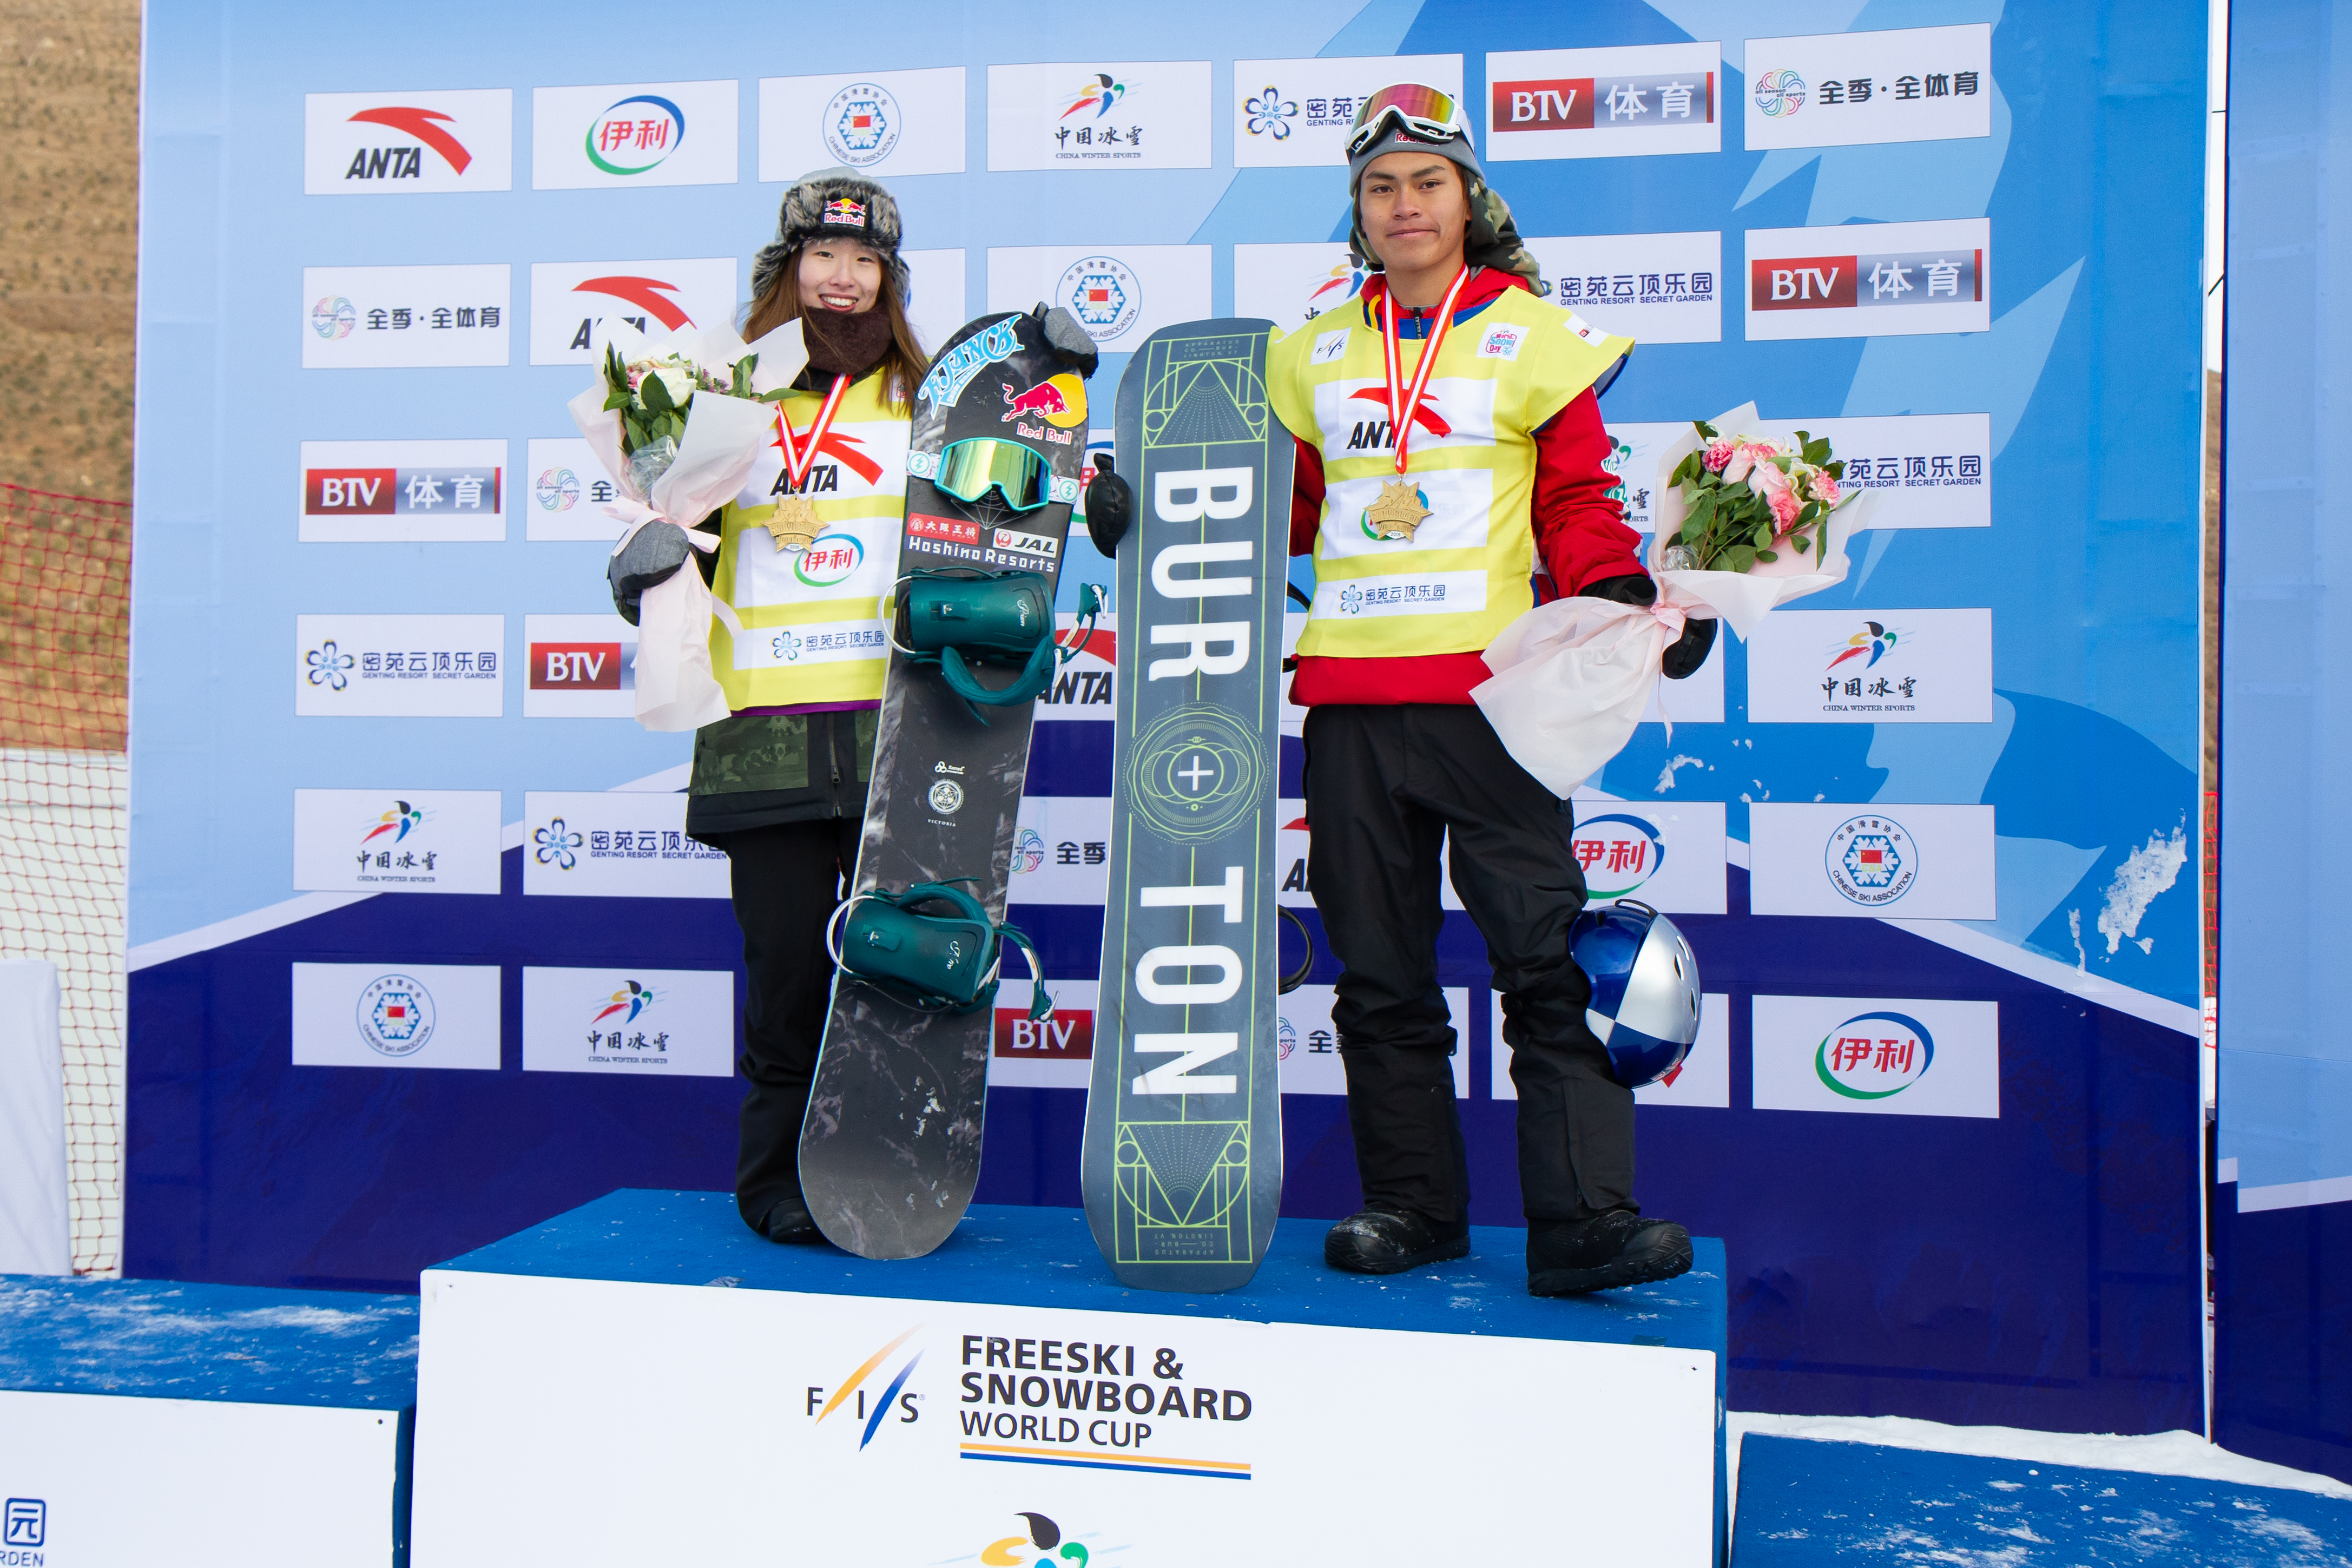 Miyabi Onitsuka and Takeru Otsuka take the yellow jersies after the  FIS World Cup Secret Garden slopestyle event in China.